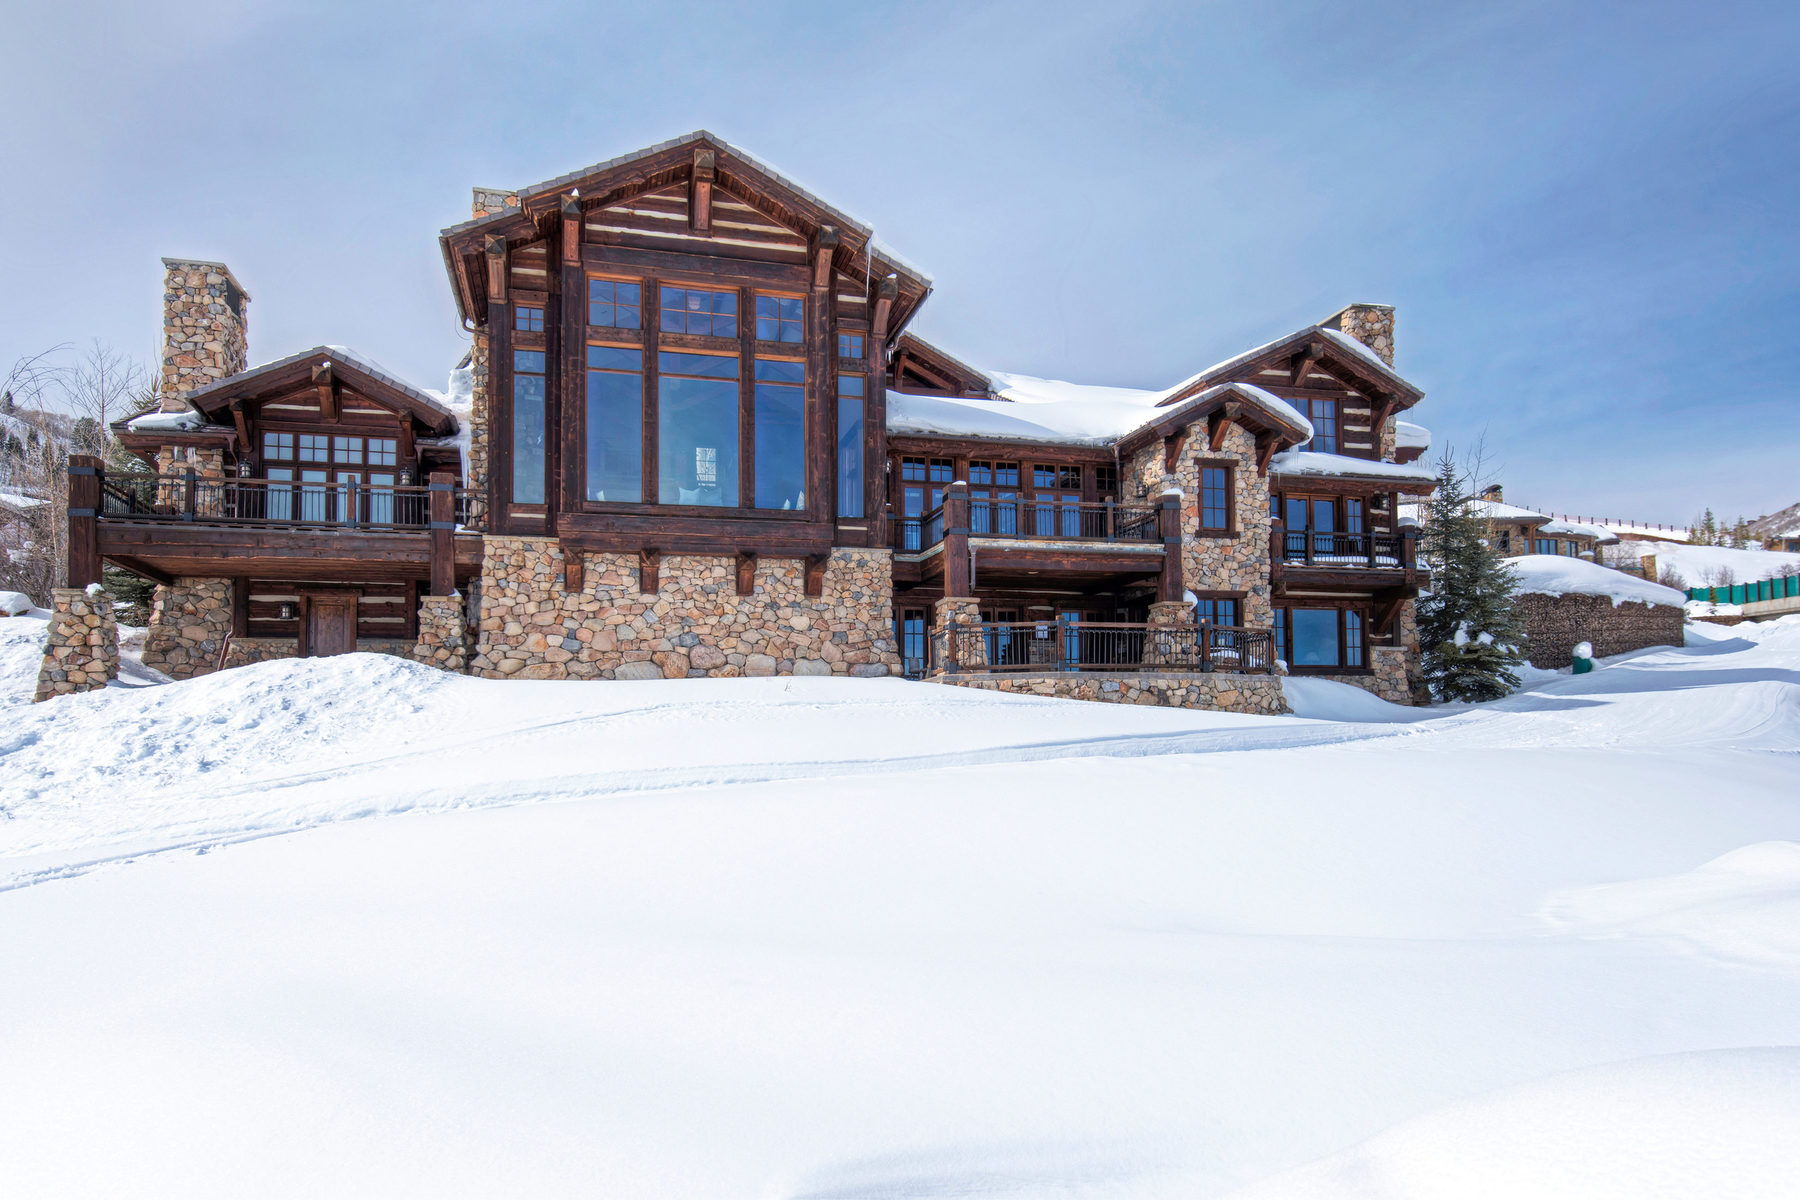 Casa para uma família para Venda às Rustic Lodge-Style Home with Grand Views and Direct Ski-in, Ski-out Access 2727 W Deer Hollow Ct Park City, Utah, 84060 Estados Unidos